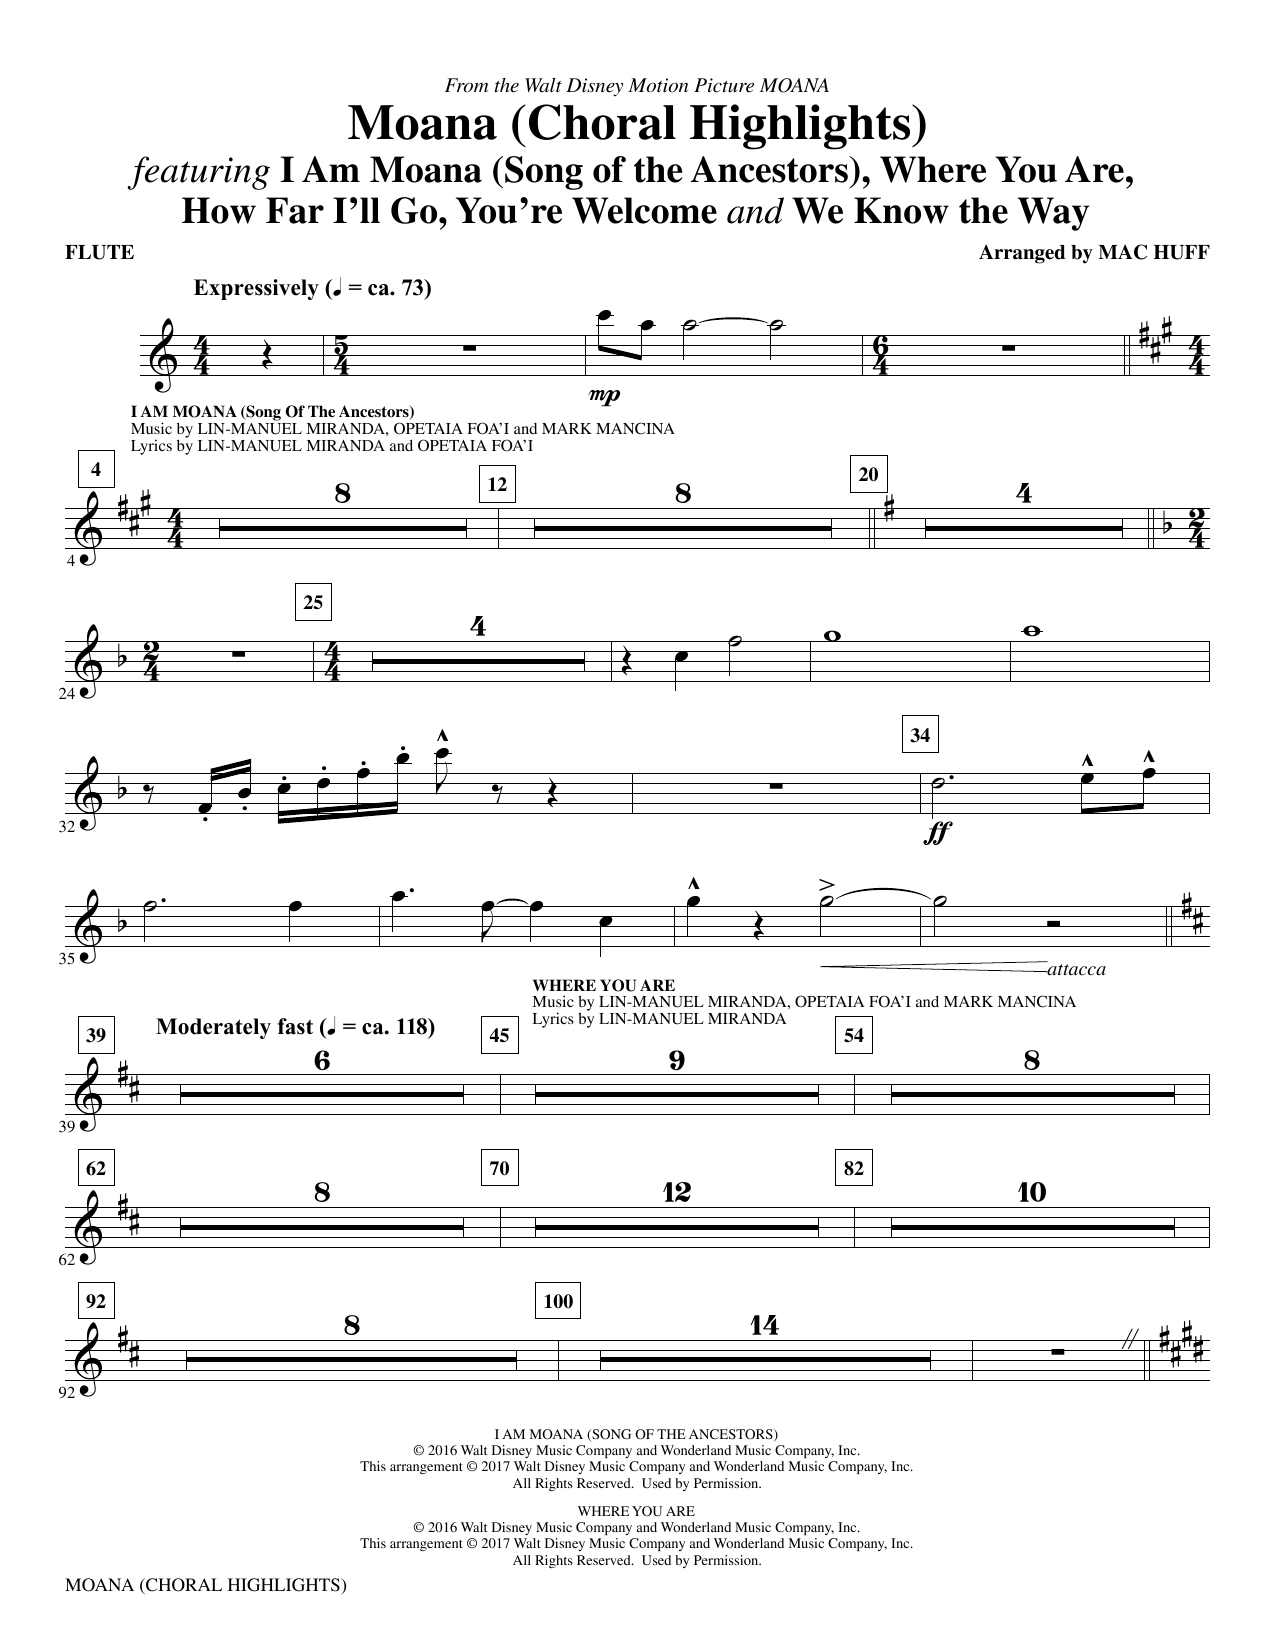 Moana (complete set of parts) sheet music for orchestra/band by Opetaia Foa'i, Lin-Manuel Miranda, Mac Huff and Mark Mancina. Score Image Preview.